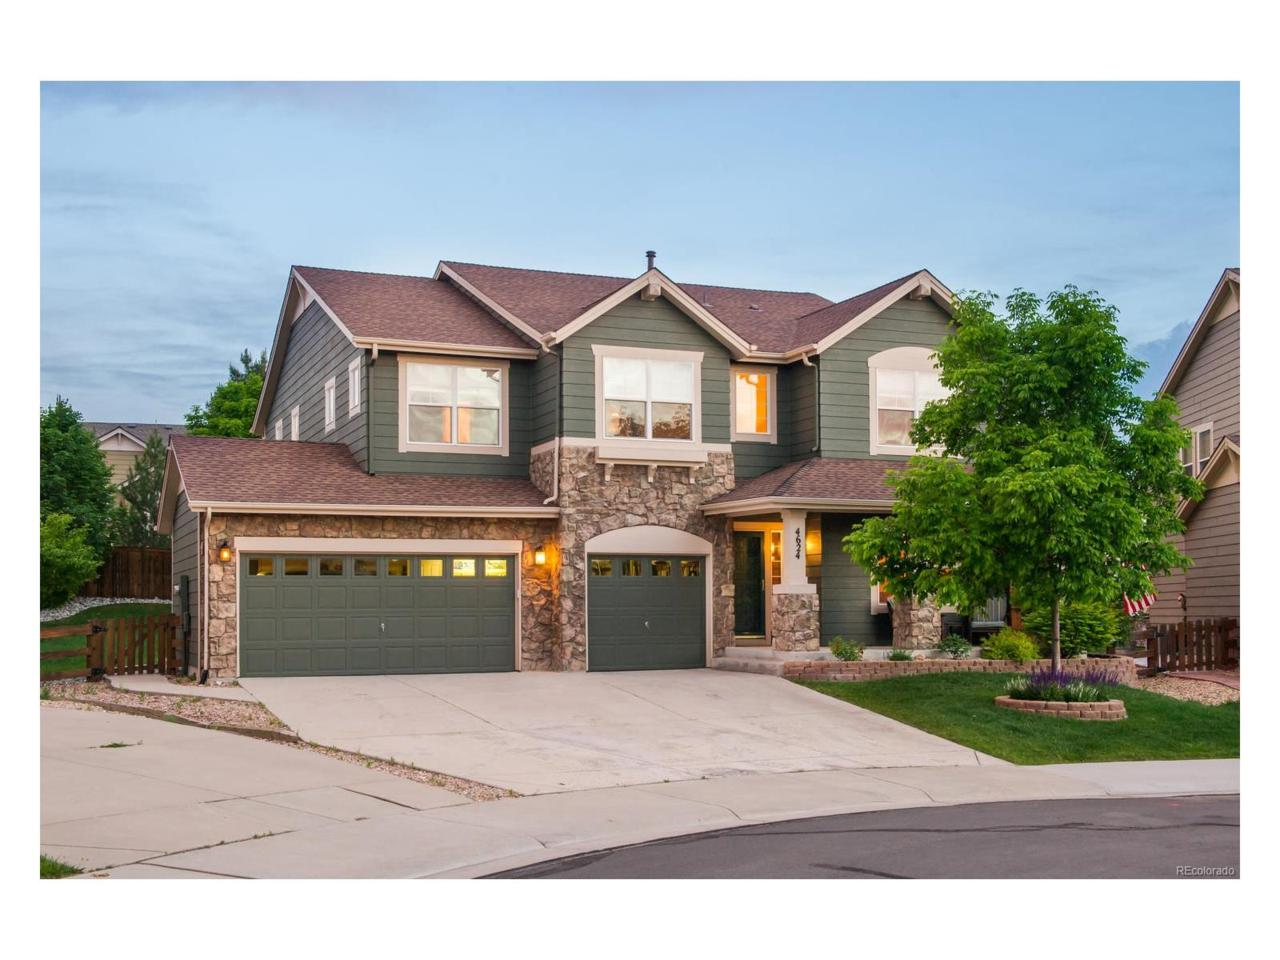 4624 Charing Court, Castle Rock, CO 80109 (MLS #6779845) :: 8z Real Estate